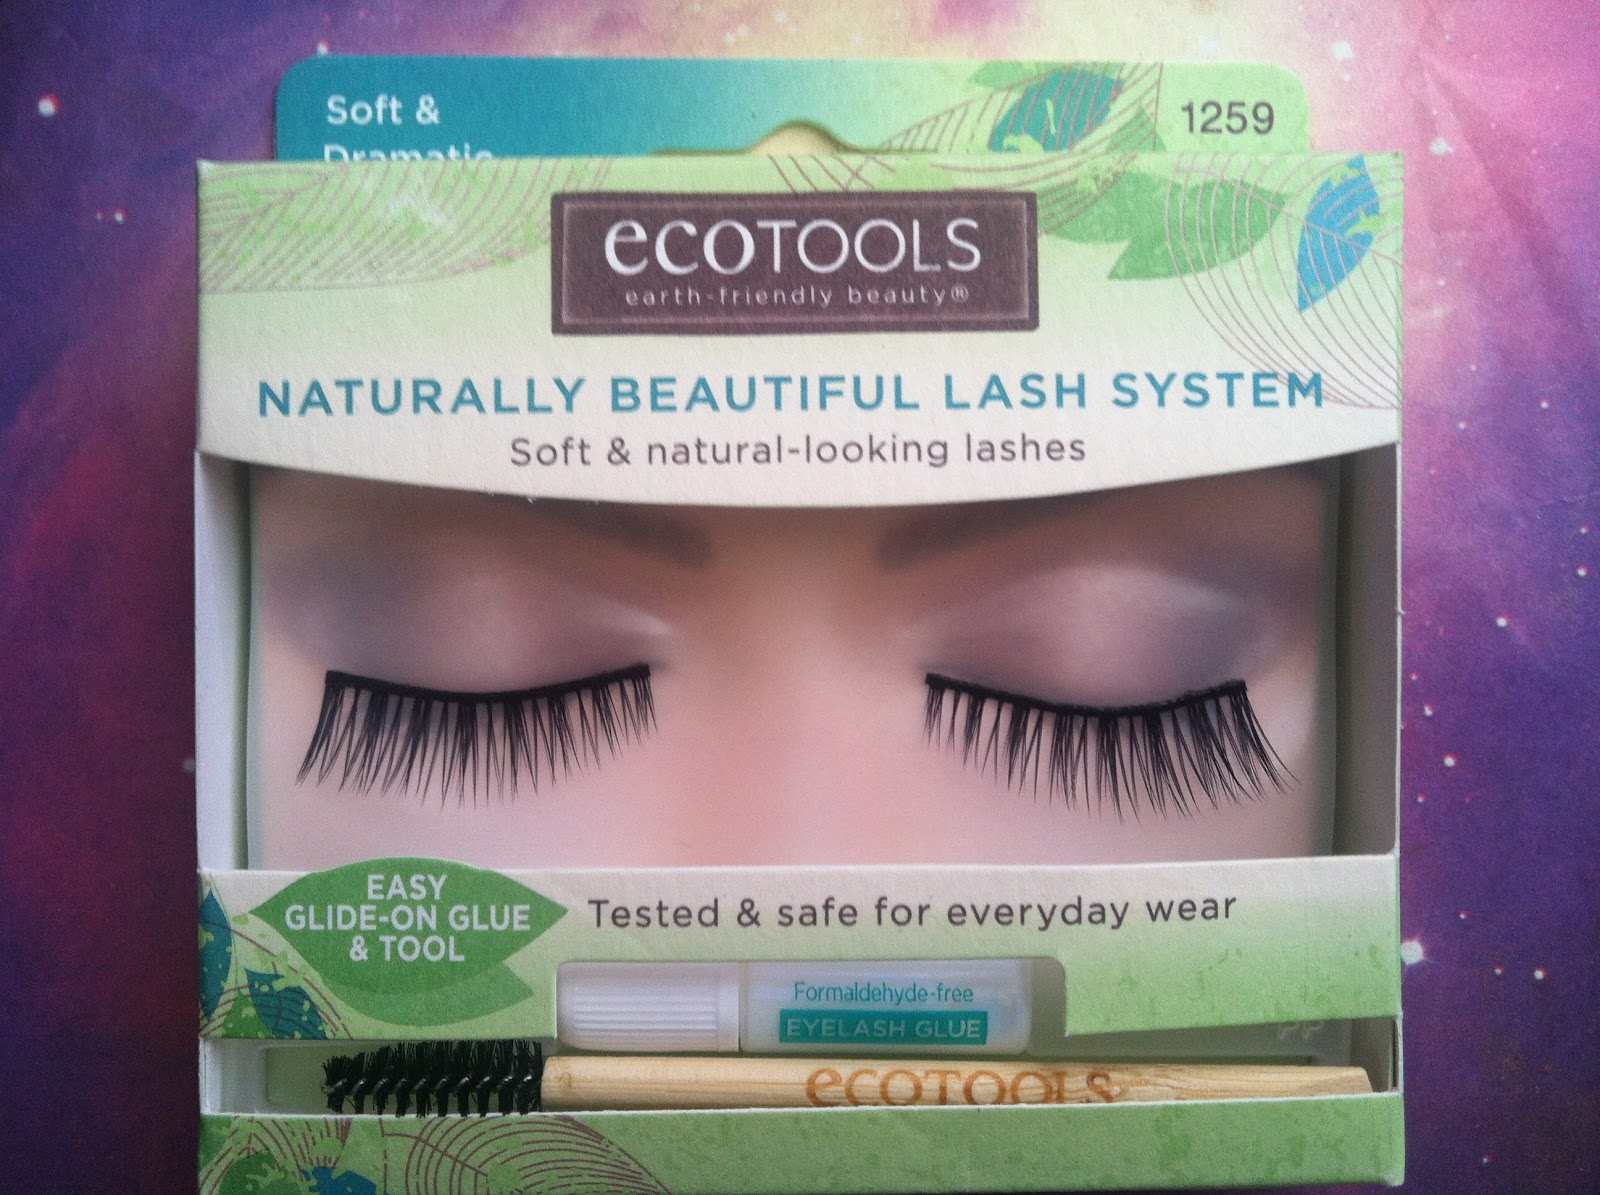 The Green Beauty Bunny: ecoTOOLS Naturally Beautiful Lash System